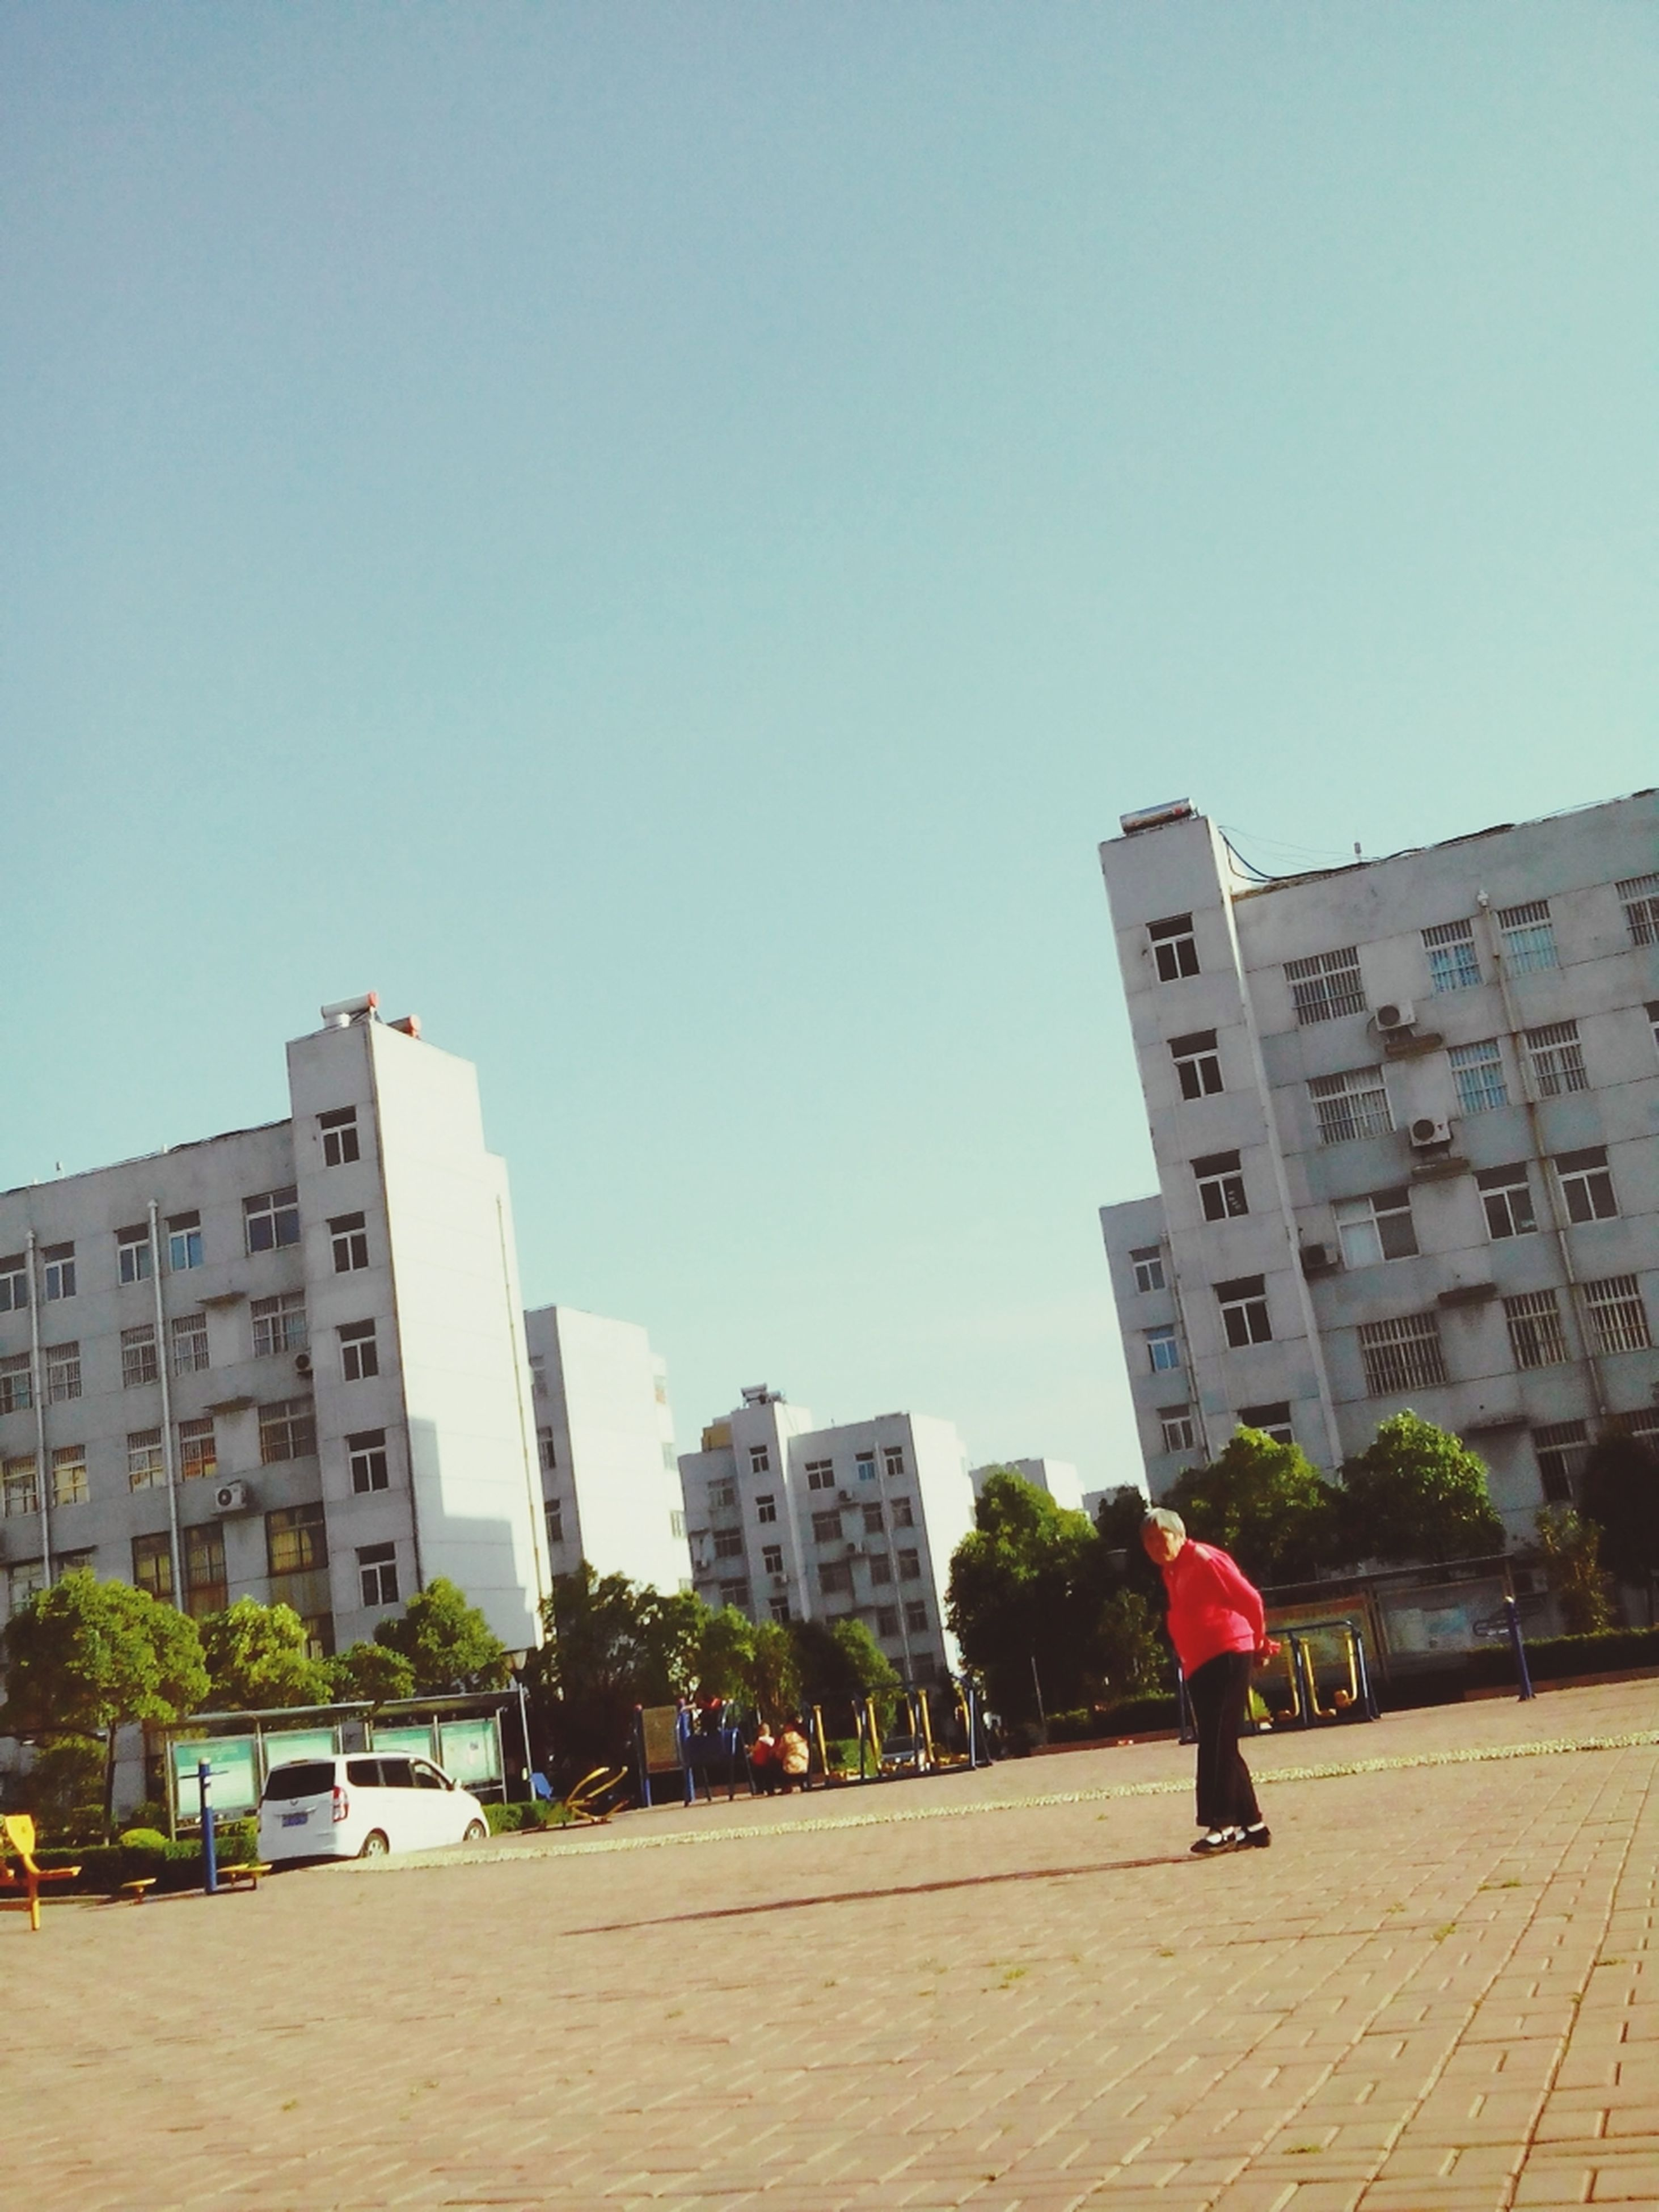 building exterior, architecture, built structure, city, clear sky, street, walking, city life, building, copy space, tower, men, skyscraper, tall - high, road, residential building, day, cityscape